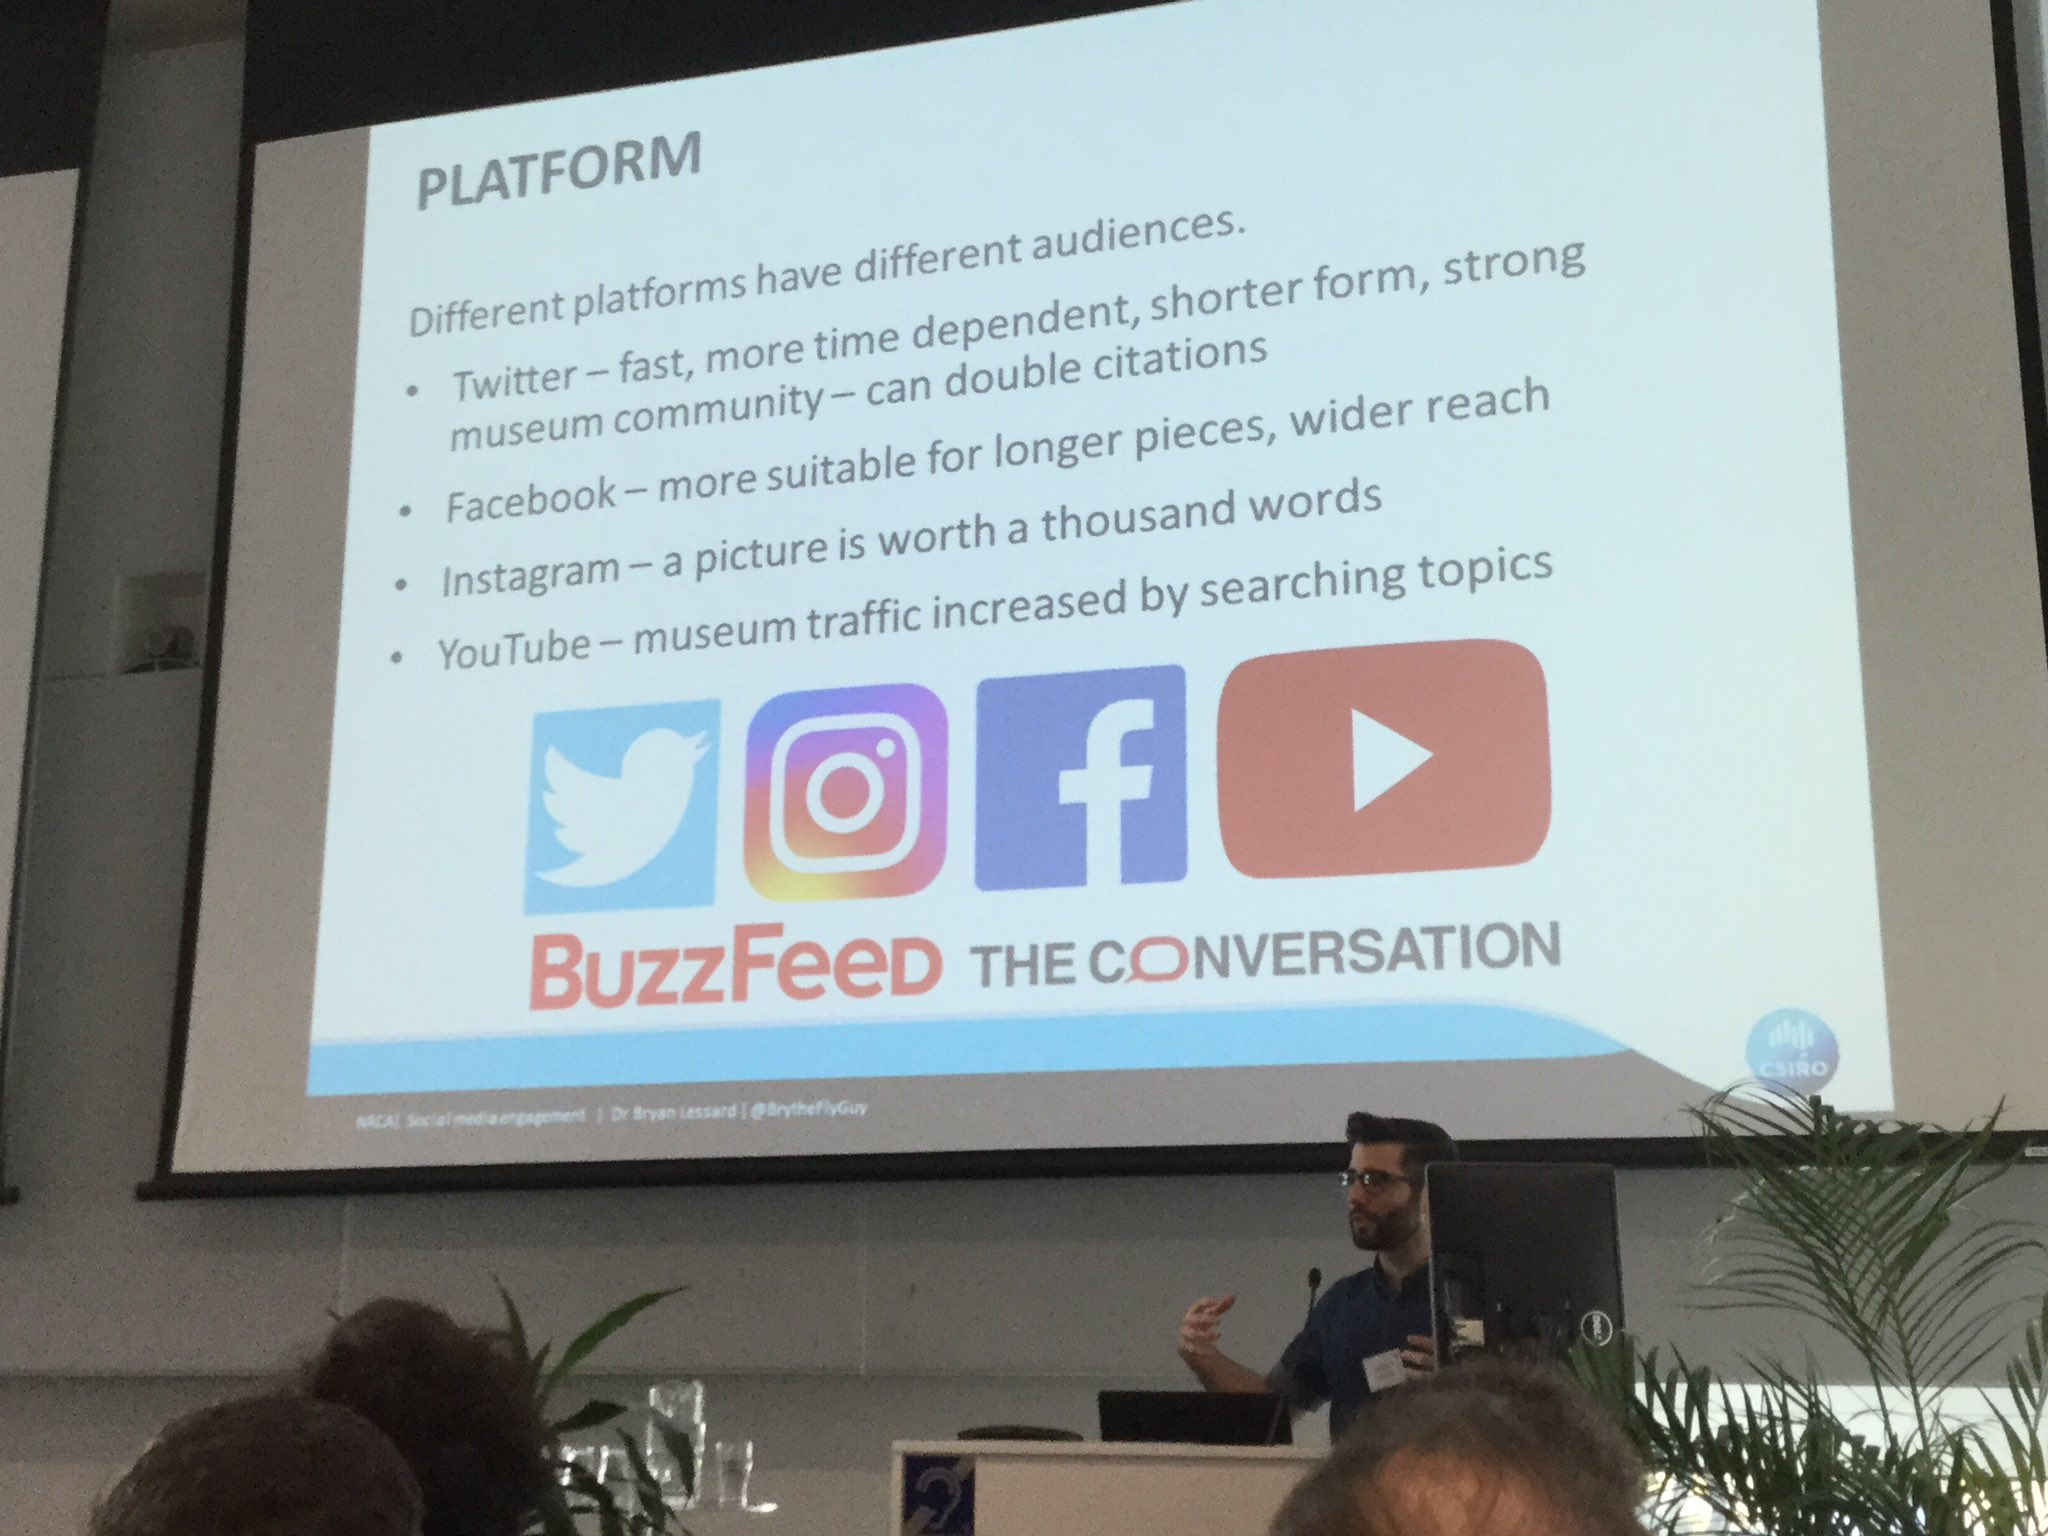 @BrytheFlyGuy Think about the right platform, there are more scholarly sites too such as @BuzzFeed or @TheConversation #OOTB https://t.co/aq144EL0tv